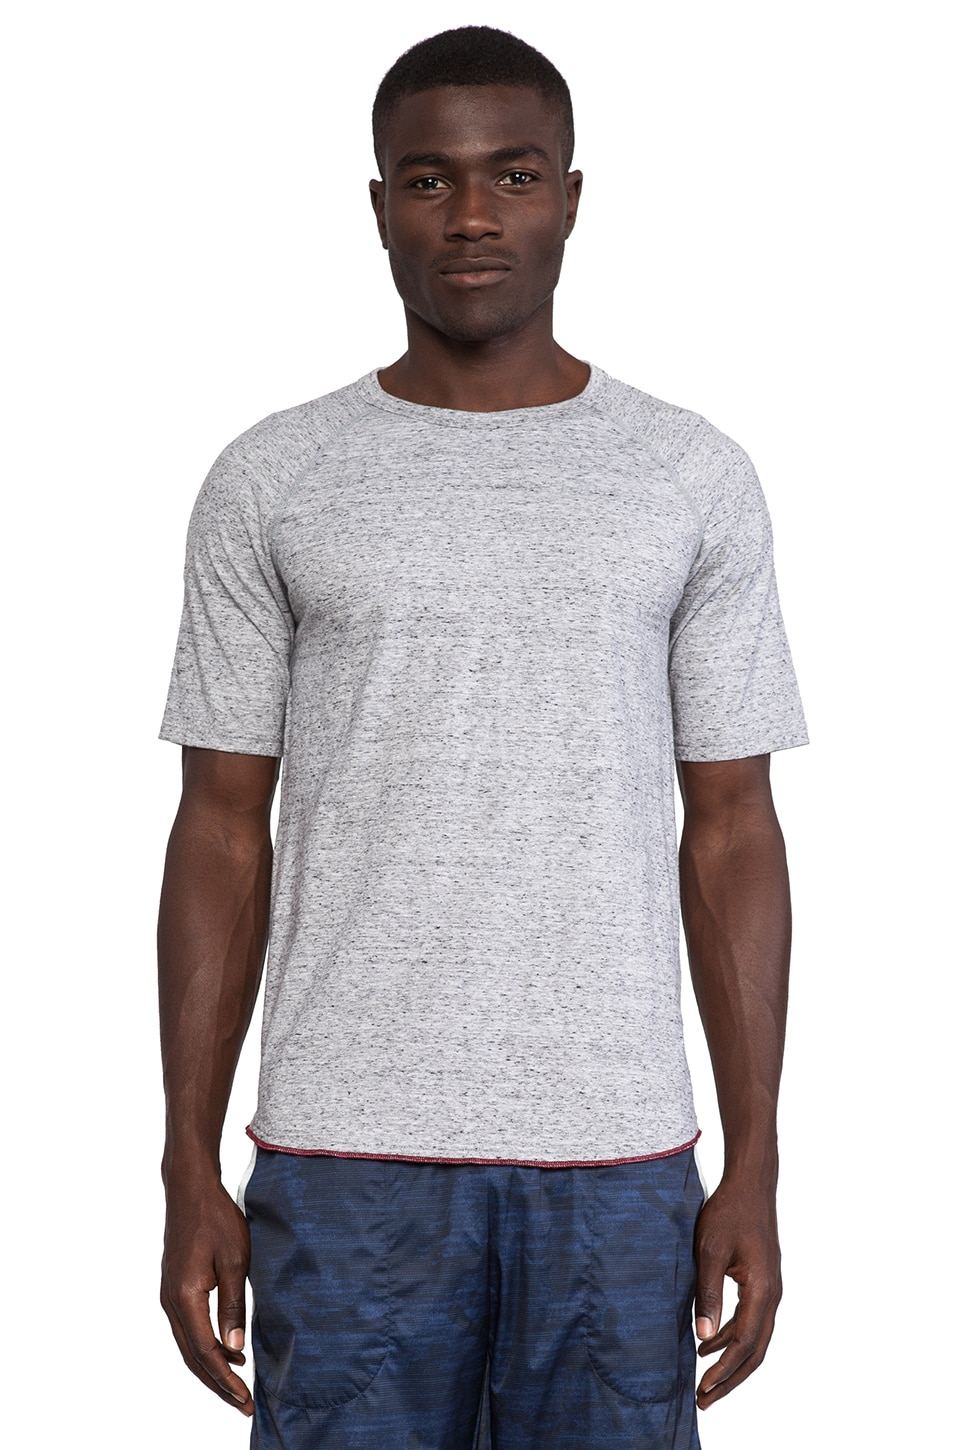 Reigning Champ Raglan Tee in Heather Grey